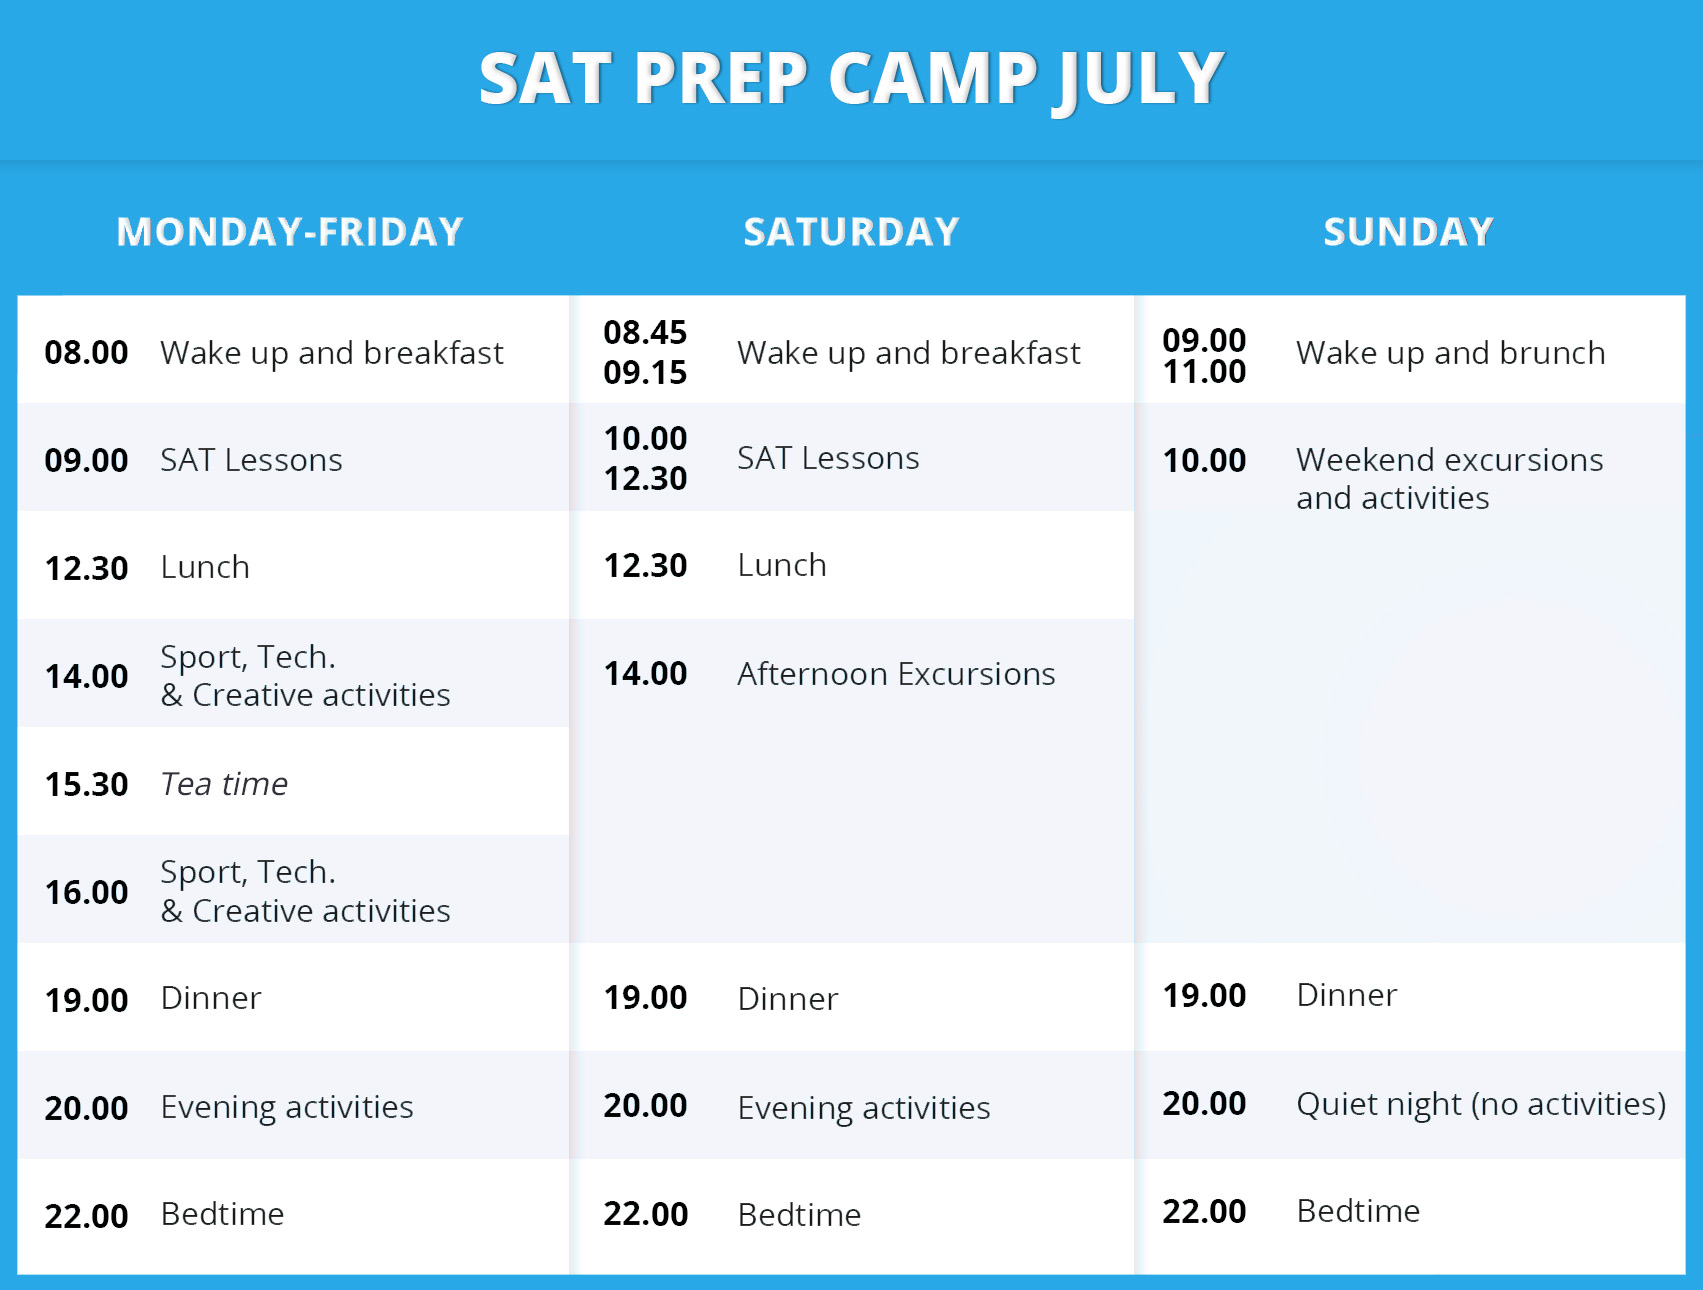 SAT Prep Camp July